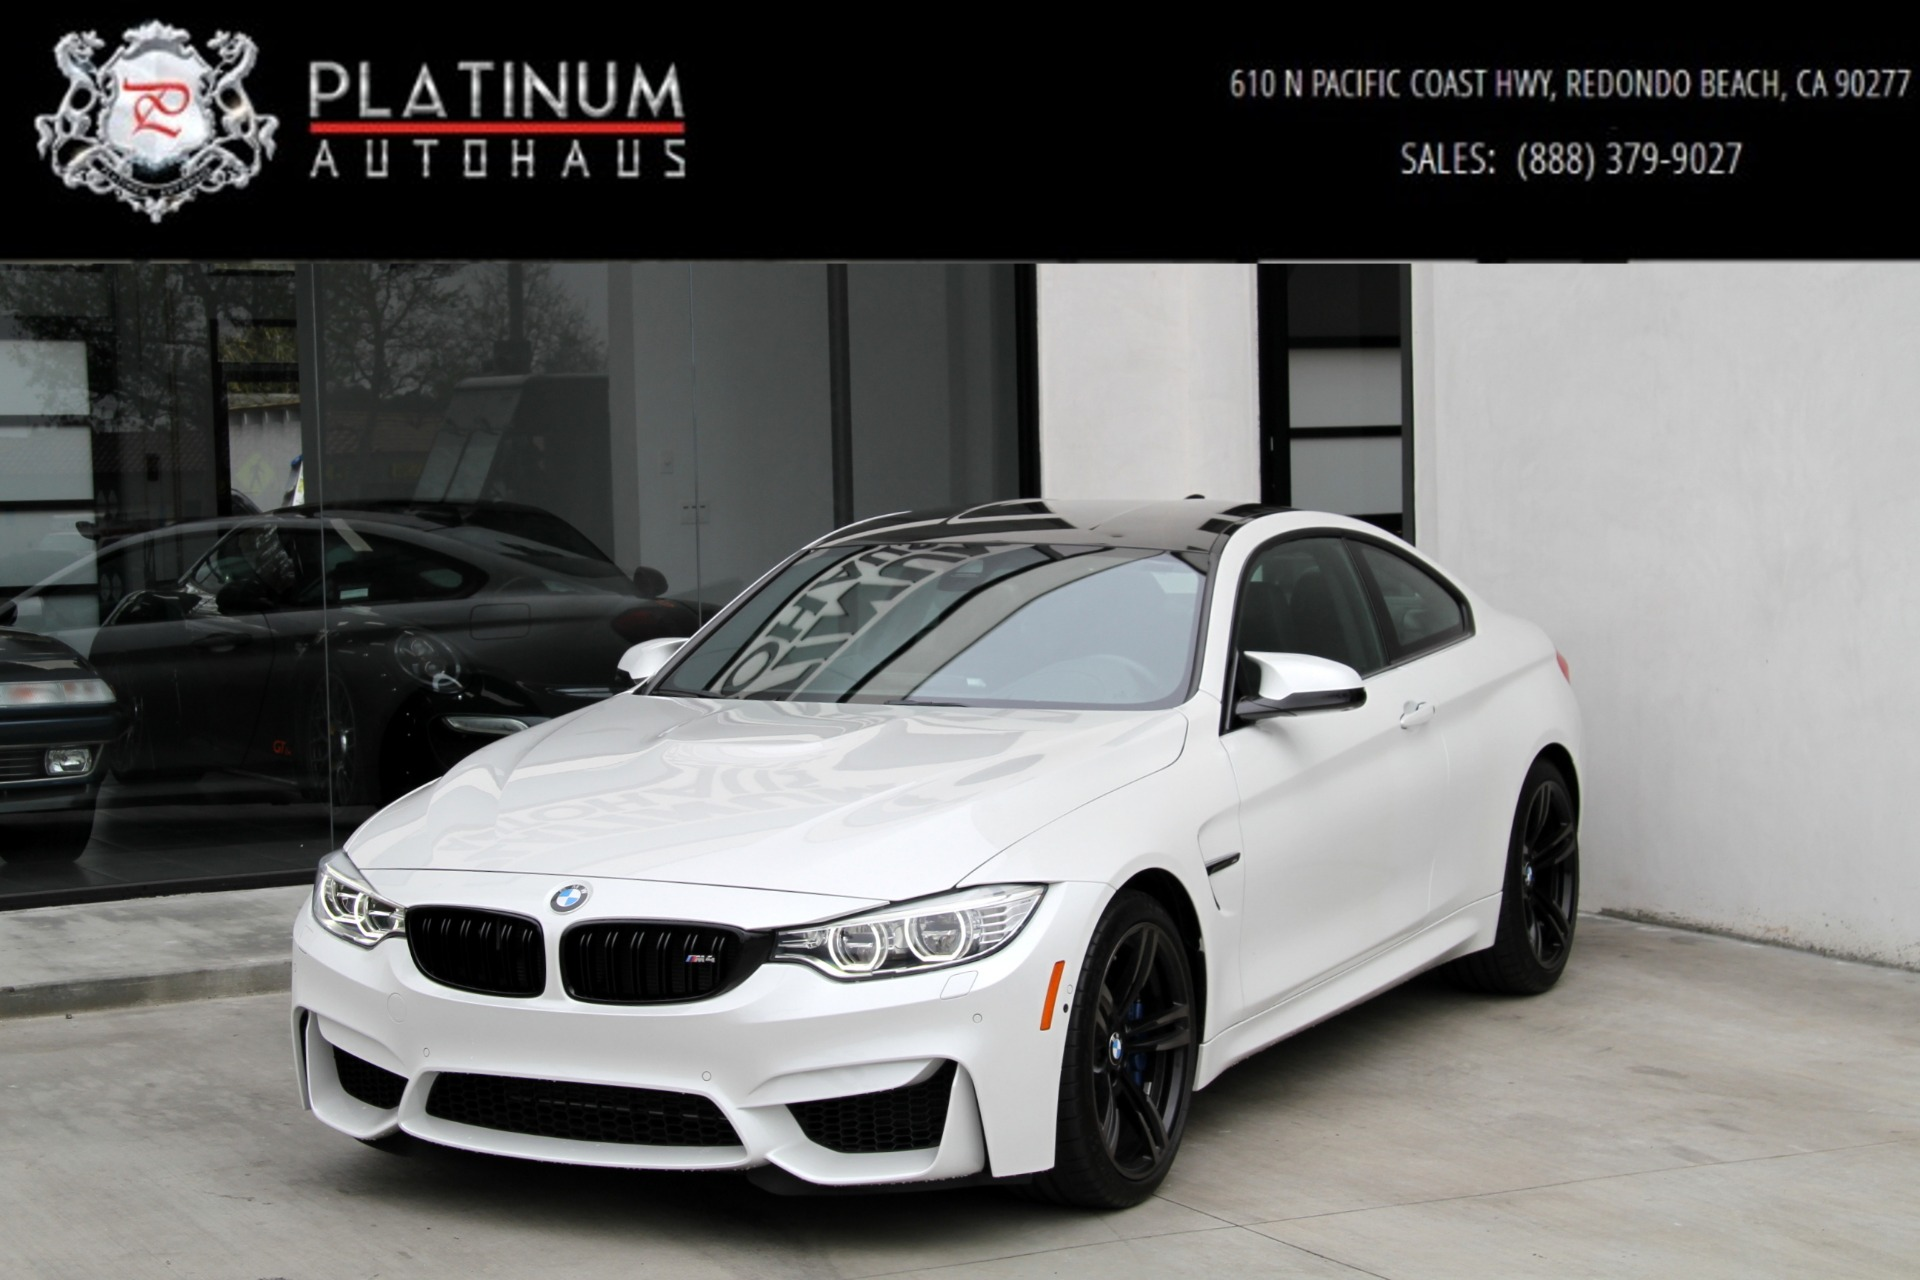 Bmw Dealership Near Me >> 2015 BMW M4 ** Carbon Fiber Roof ** Stock # 6151 for sale near Redondo Beach, CA | CA BMW Dealer